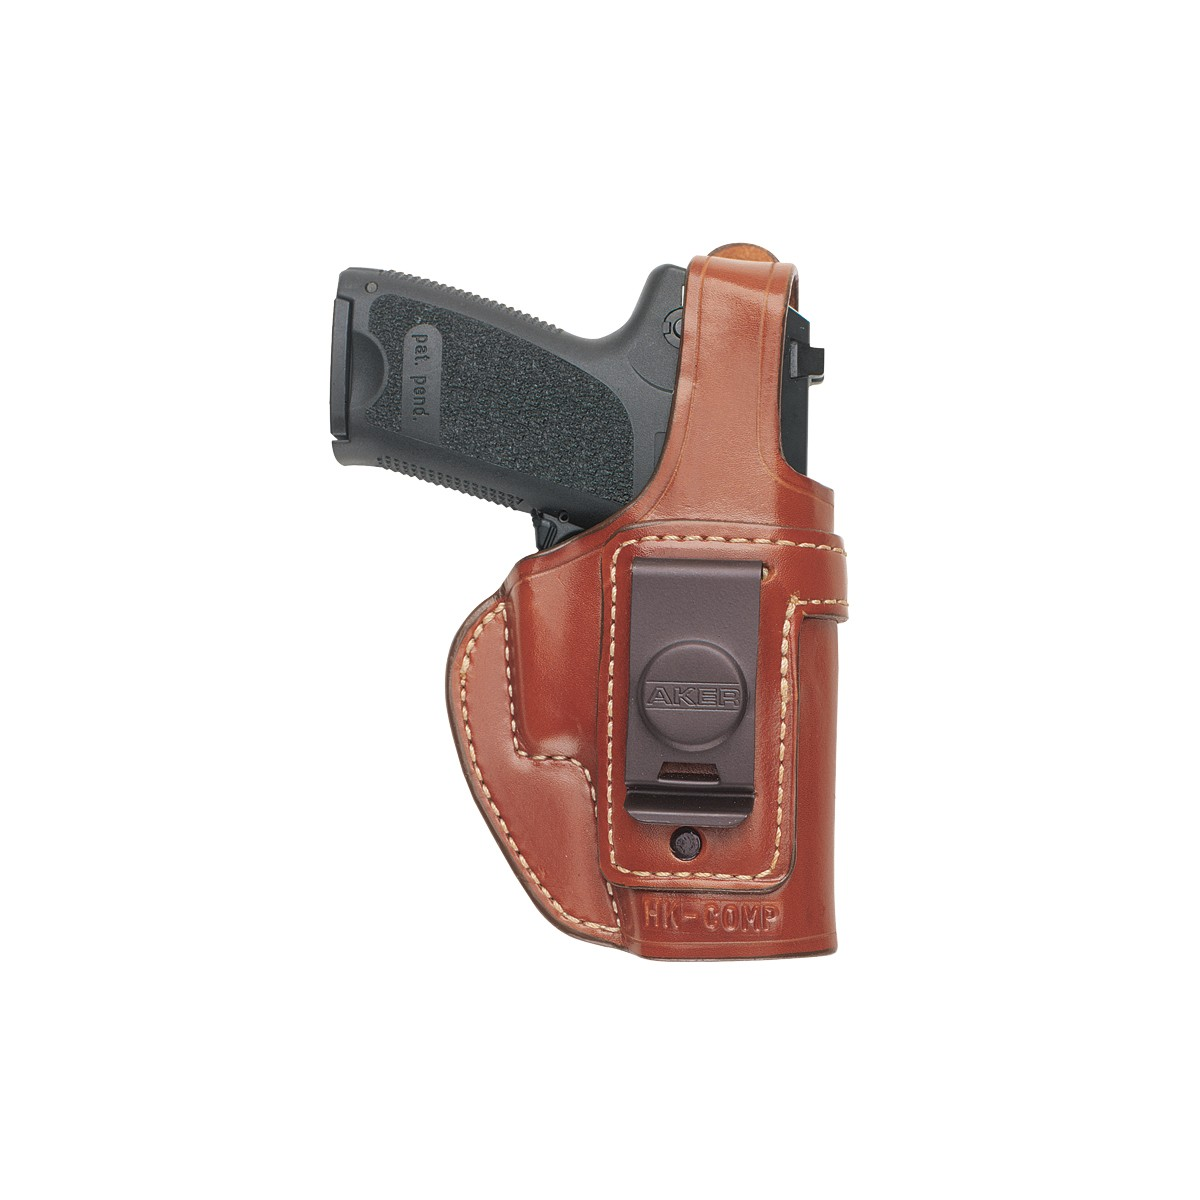 Aker Leather Holsters, Belts & Accessories: Duty Gear & Concealed Carry